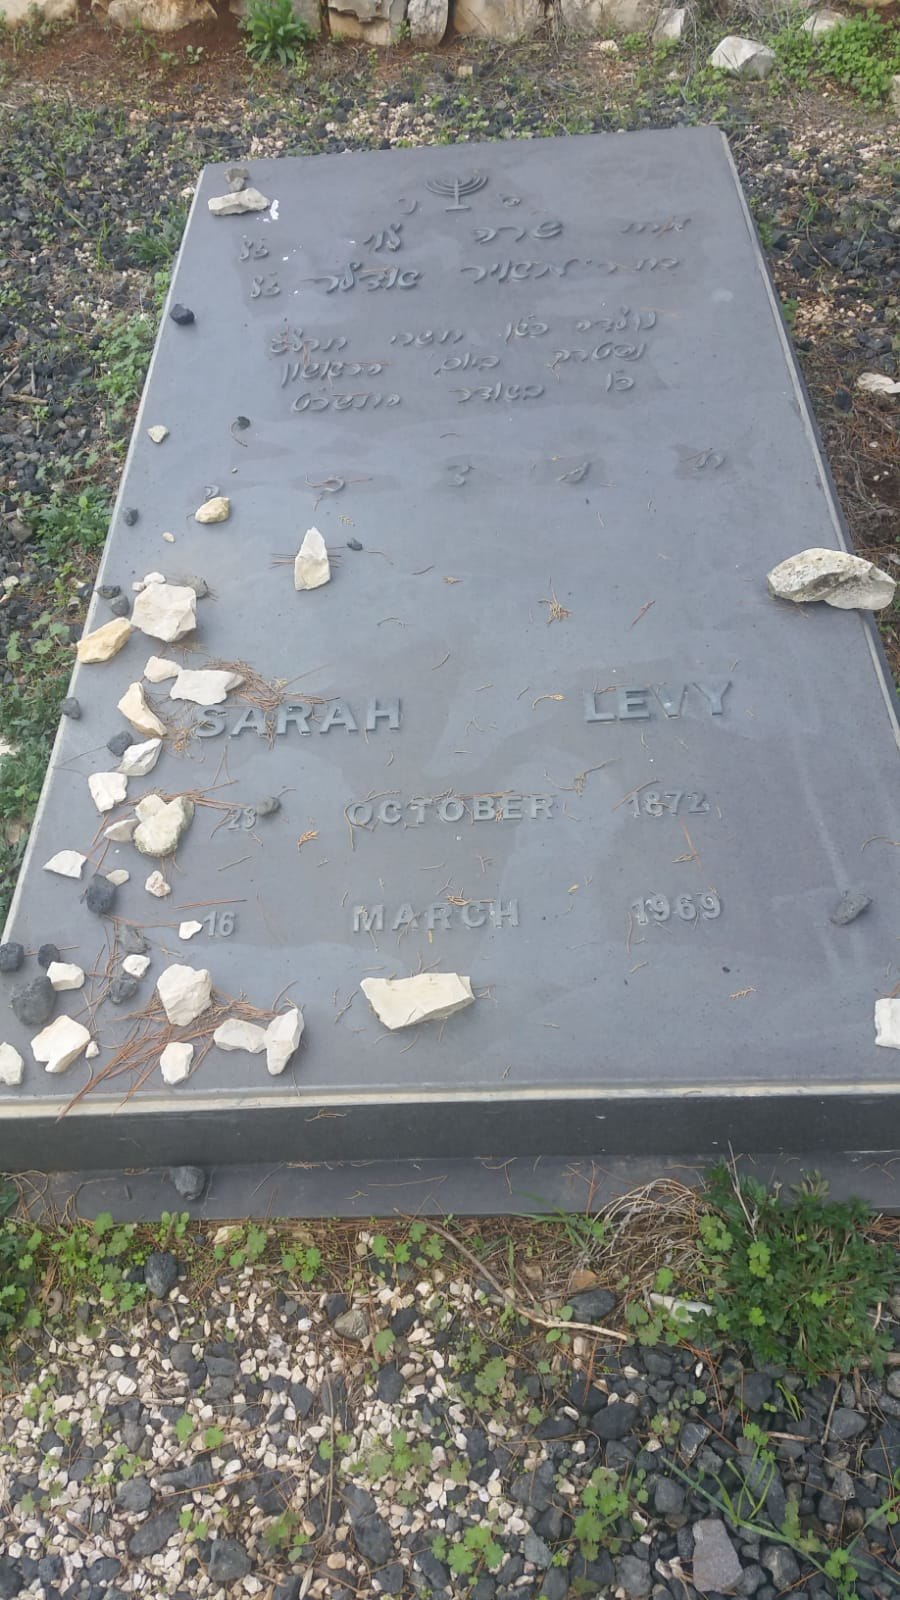 Grave of Sarah Levi on Mount Canaan in Safed